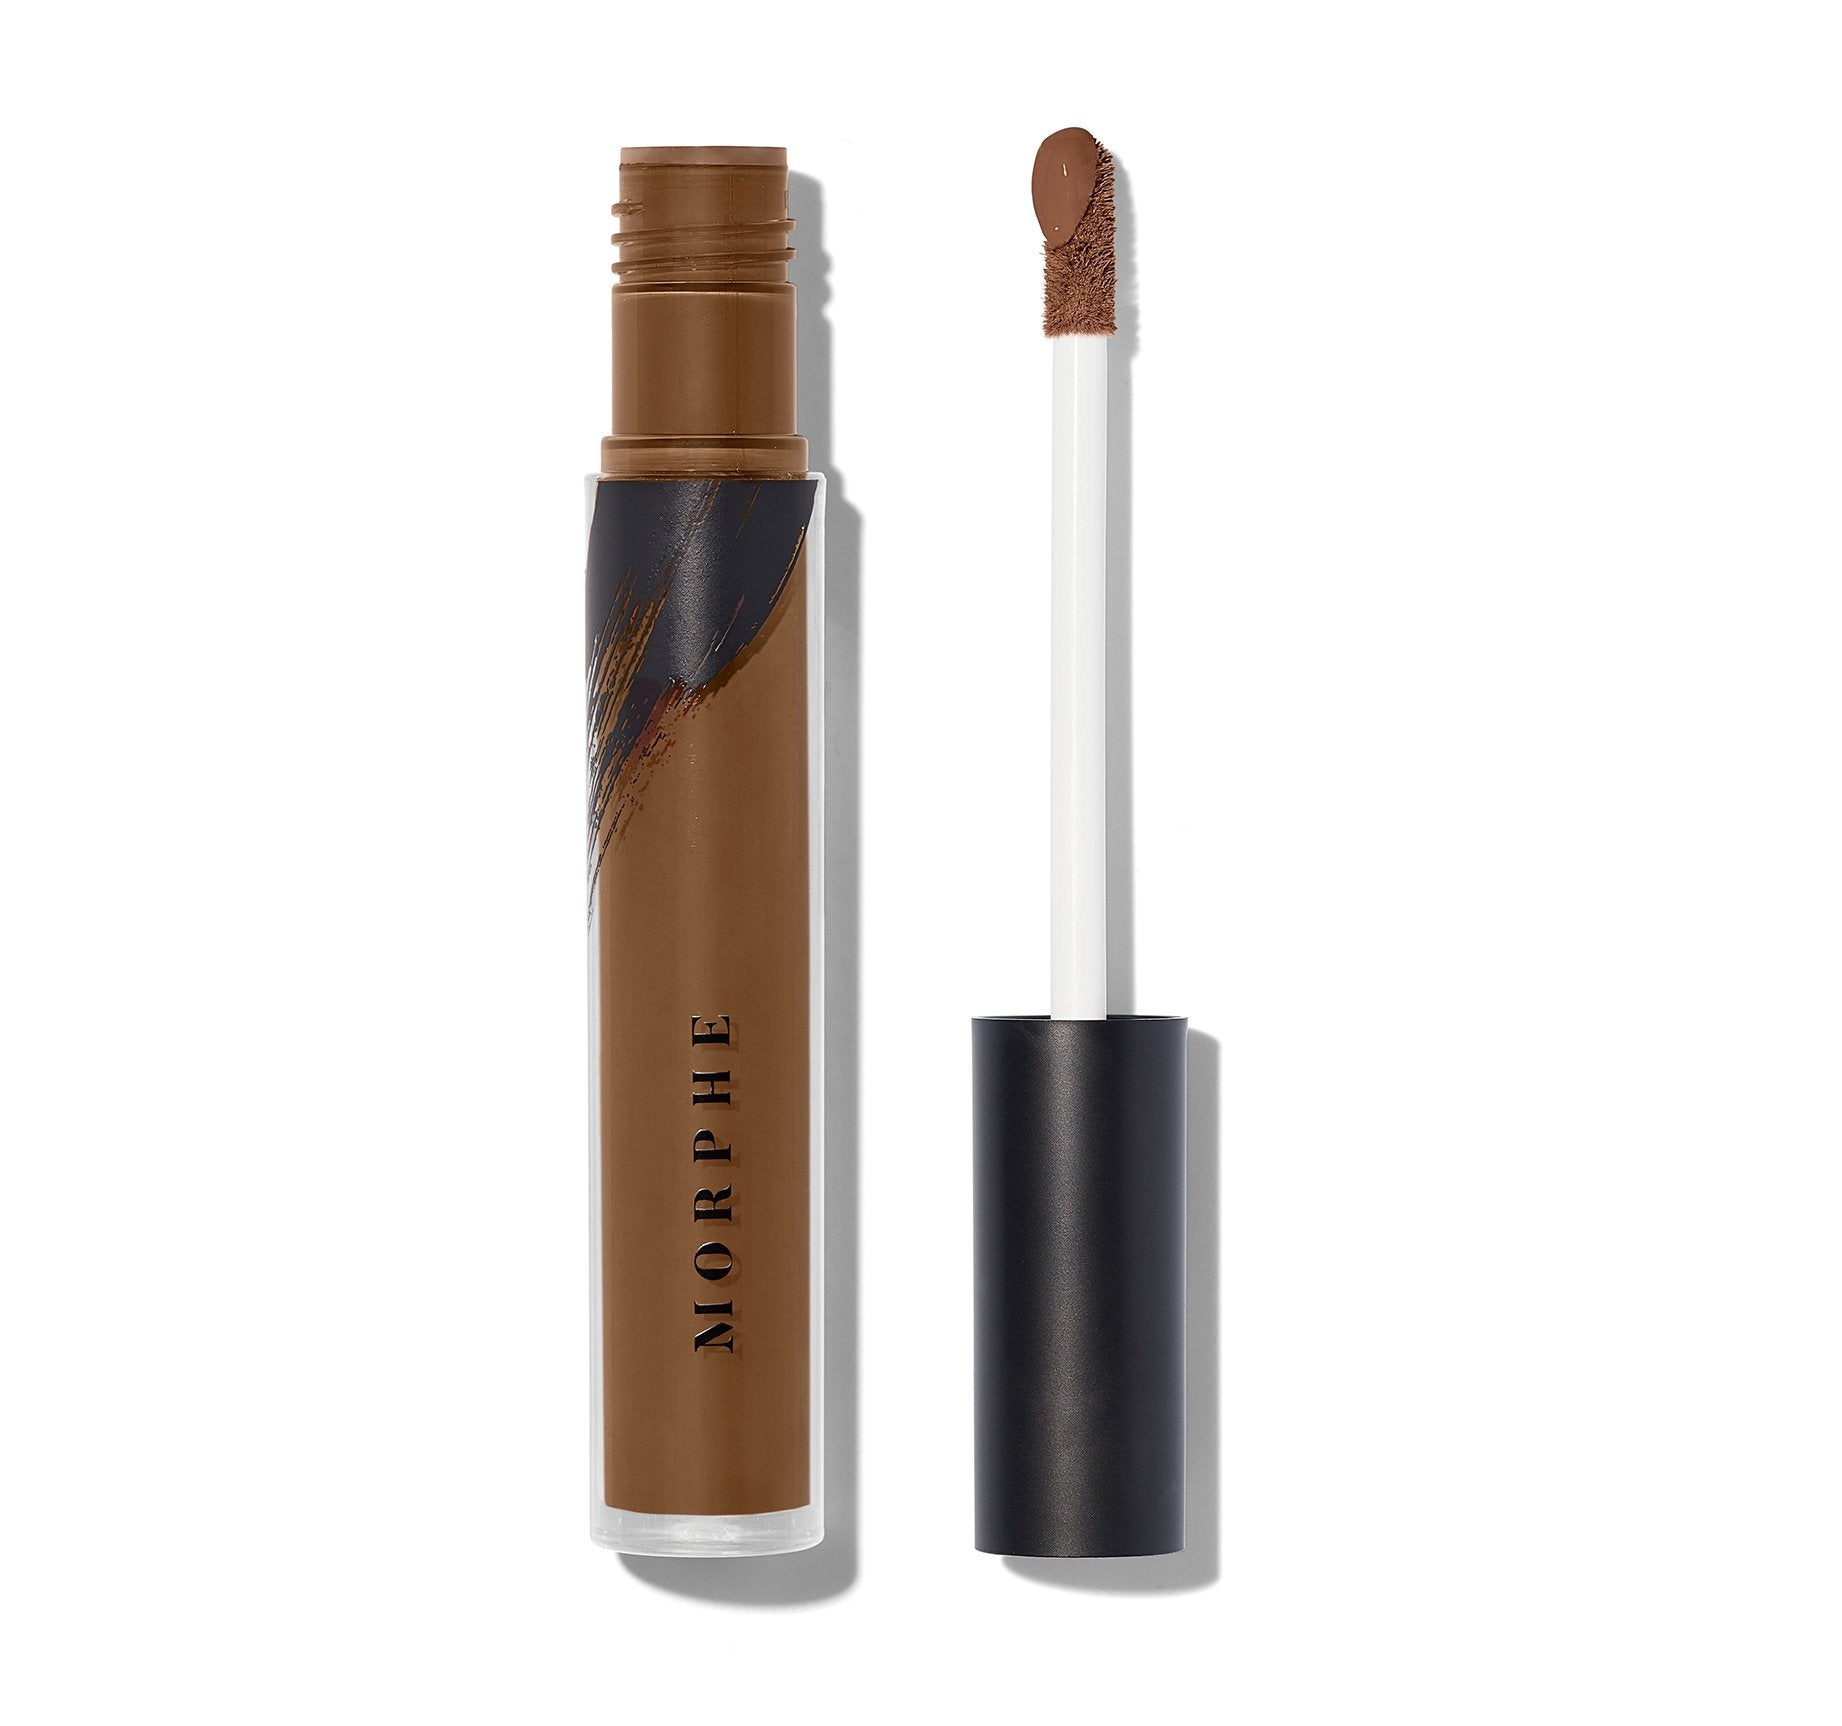 FLUIDITY FULL-COVERAGE CONCEALER - C5.14, view larger image